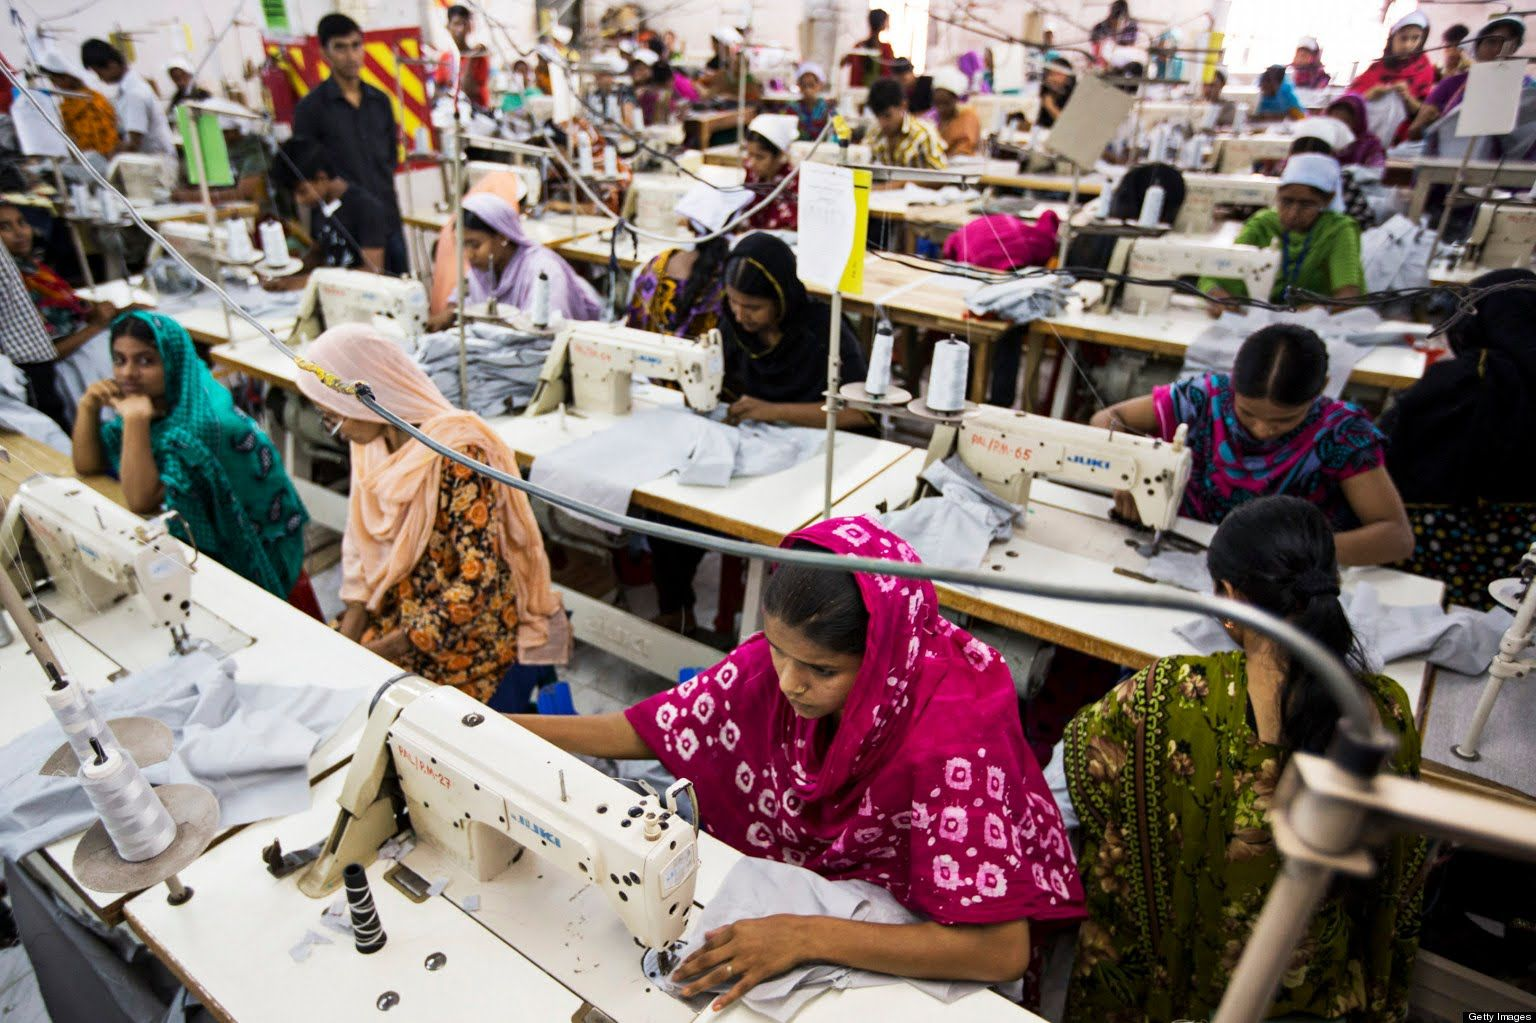 100% Of Bangladesh Factories Violate Safety Rules